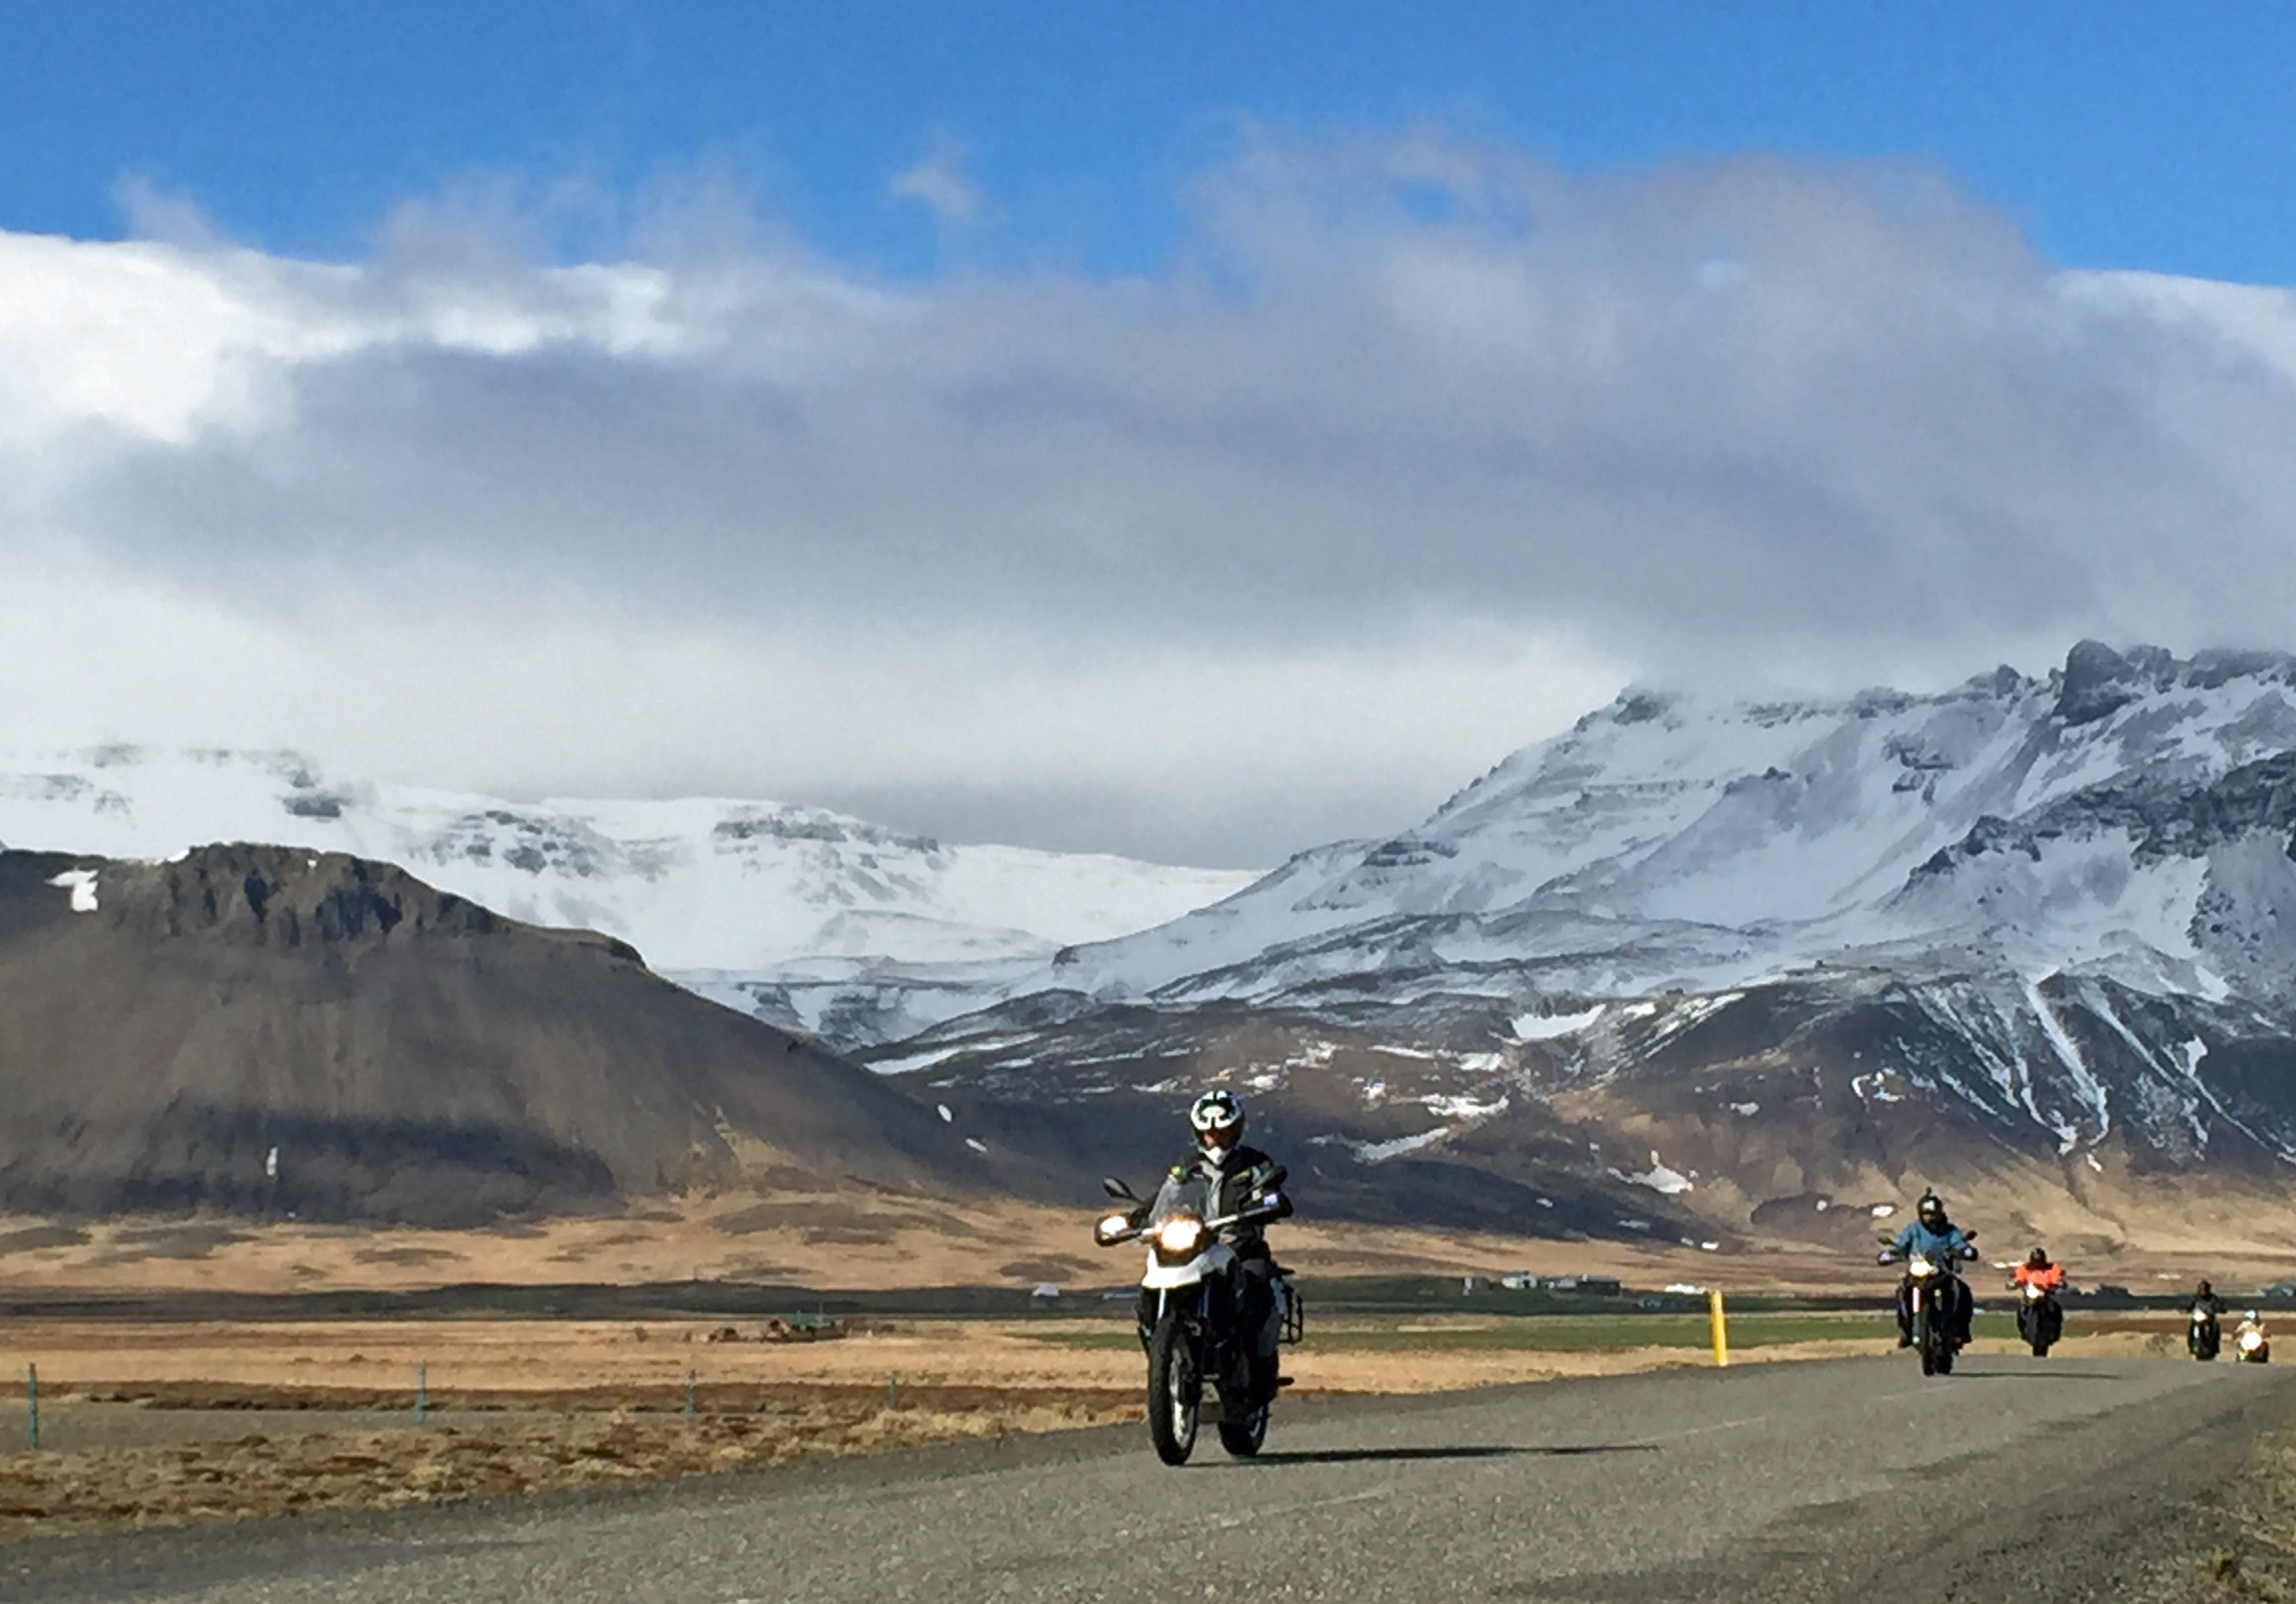 GlobeBusters announces two motorcycling tours in Iceland